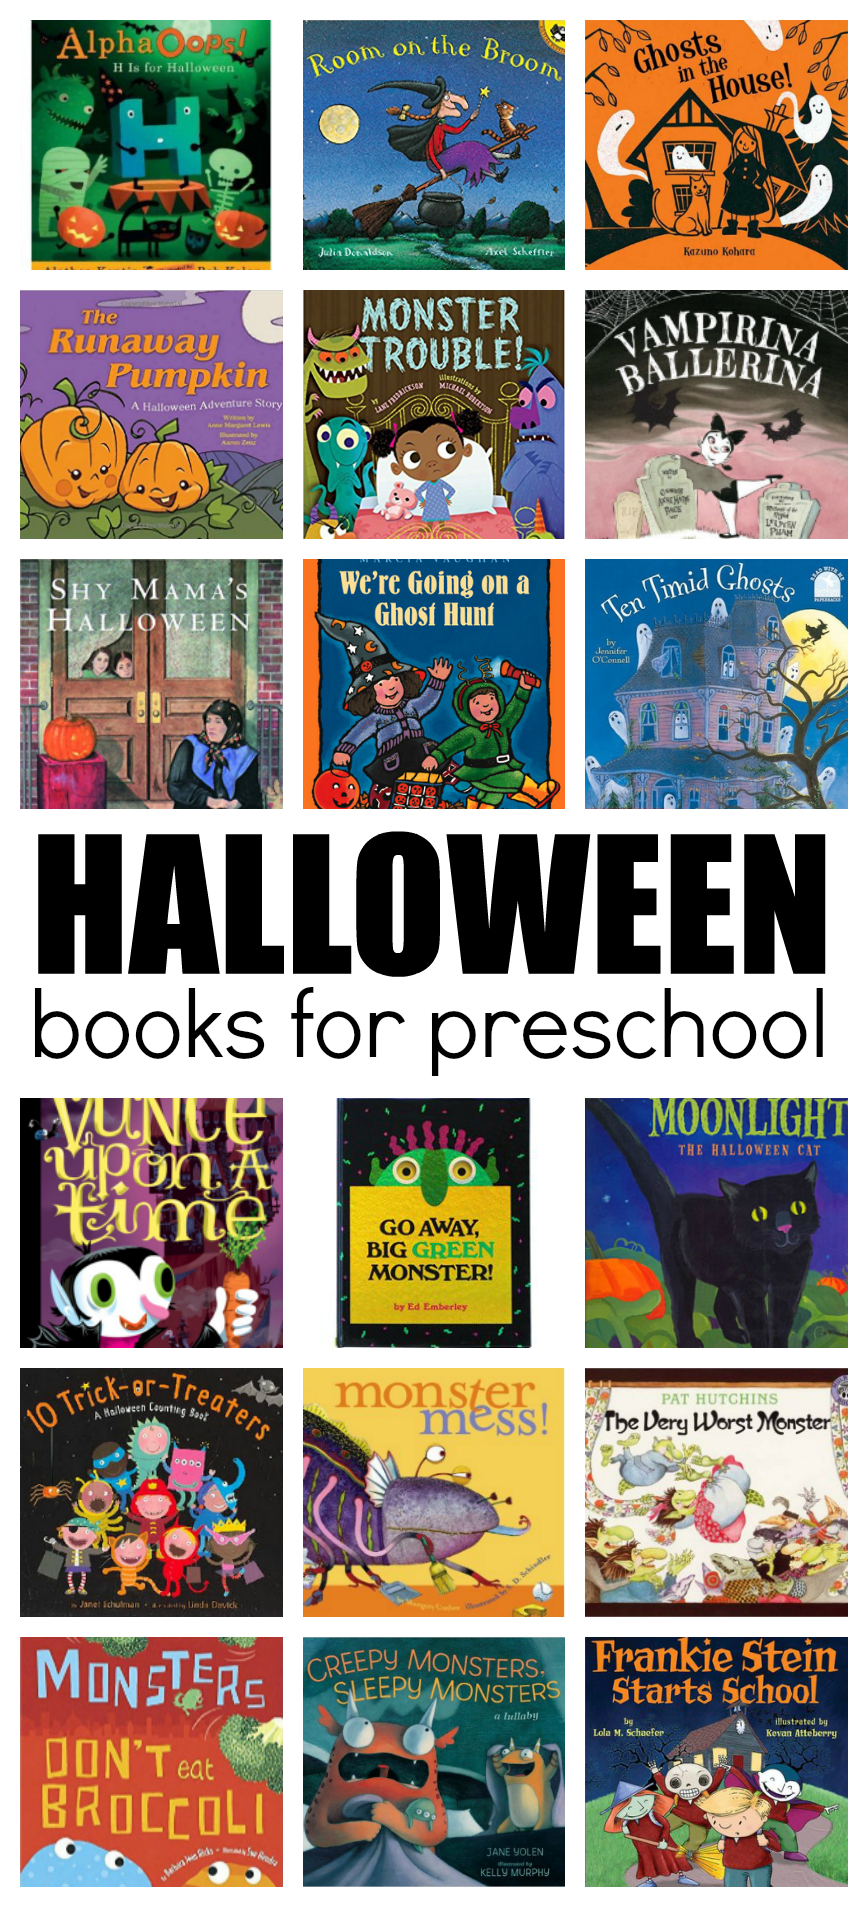 Great list of Halloween themed books for preschool and kindergarten